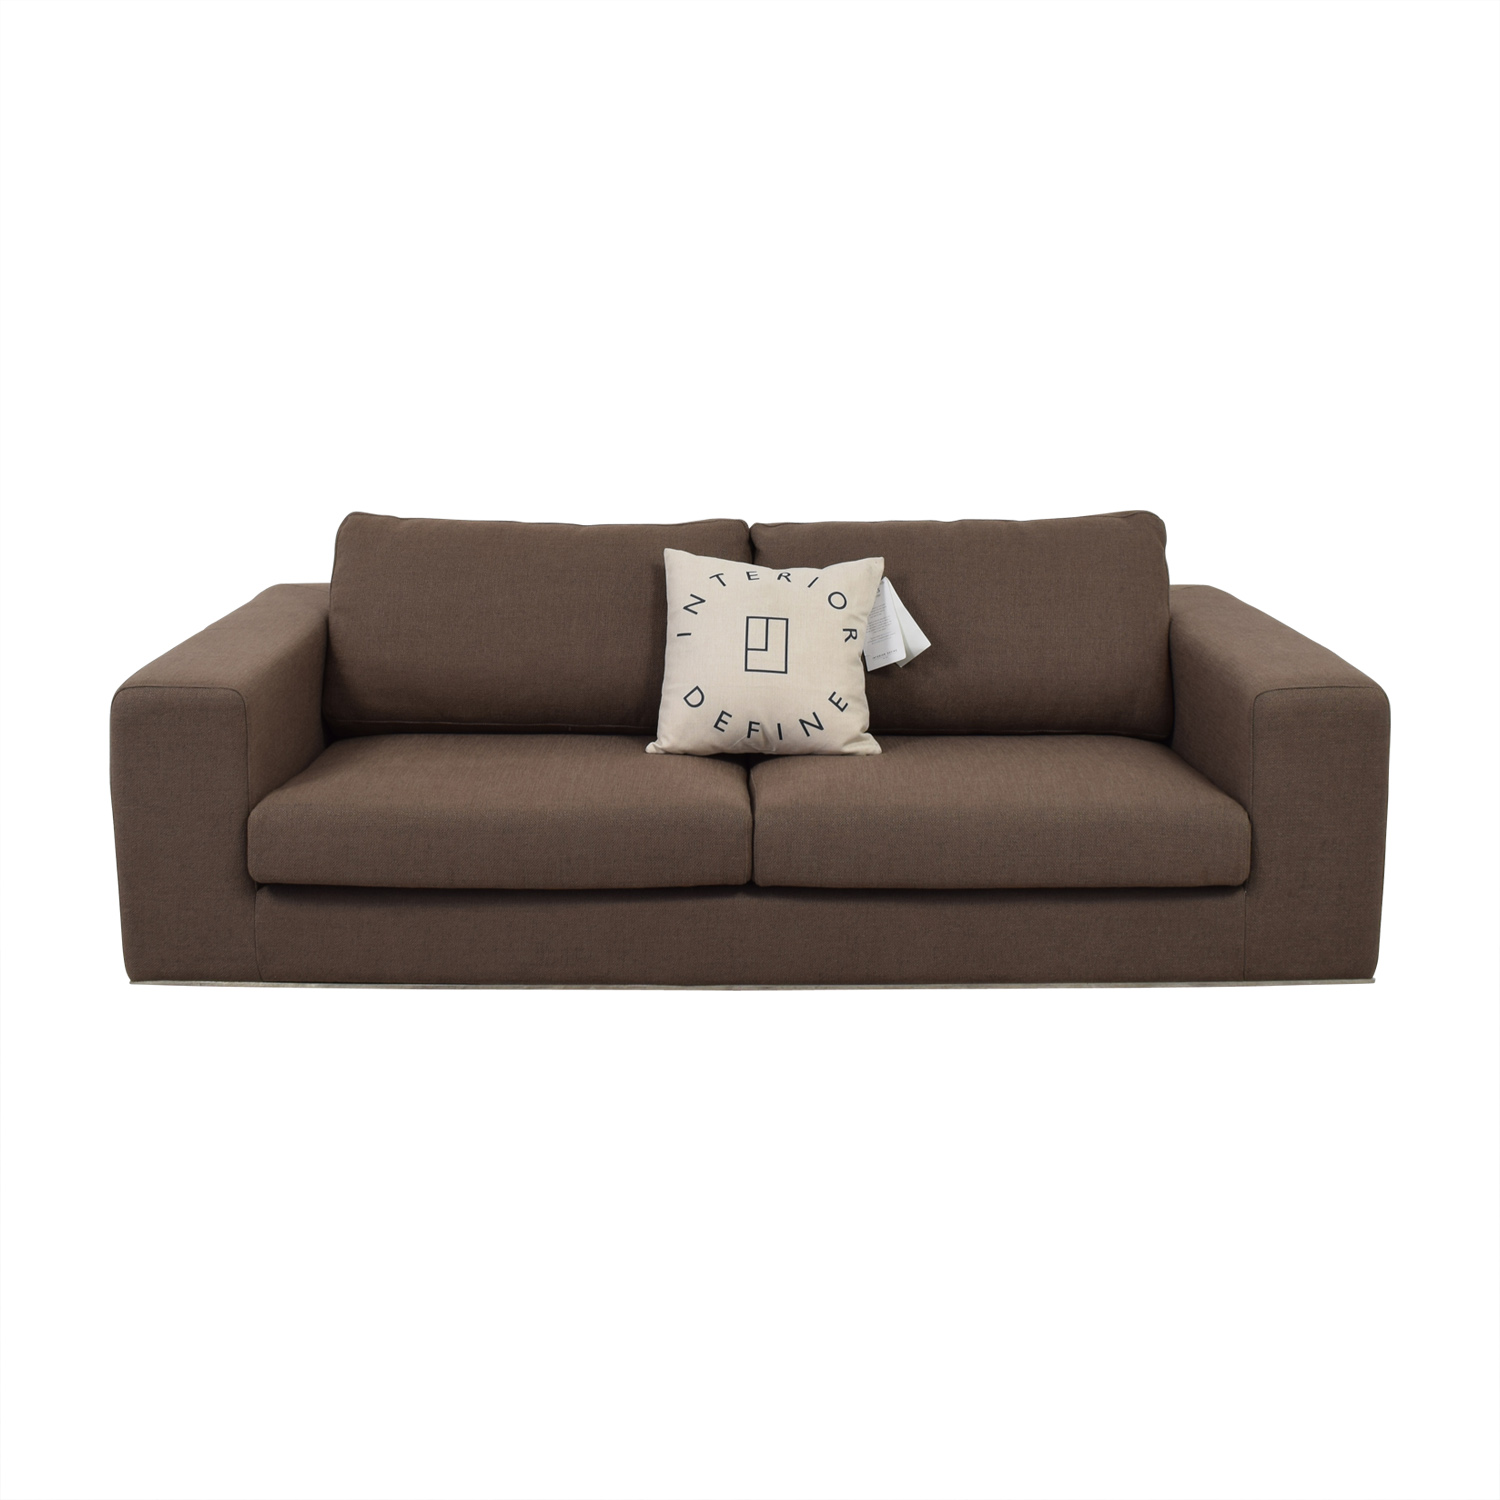 Walters Brown Two-Cushion Sofa second hand